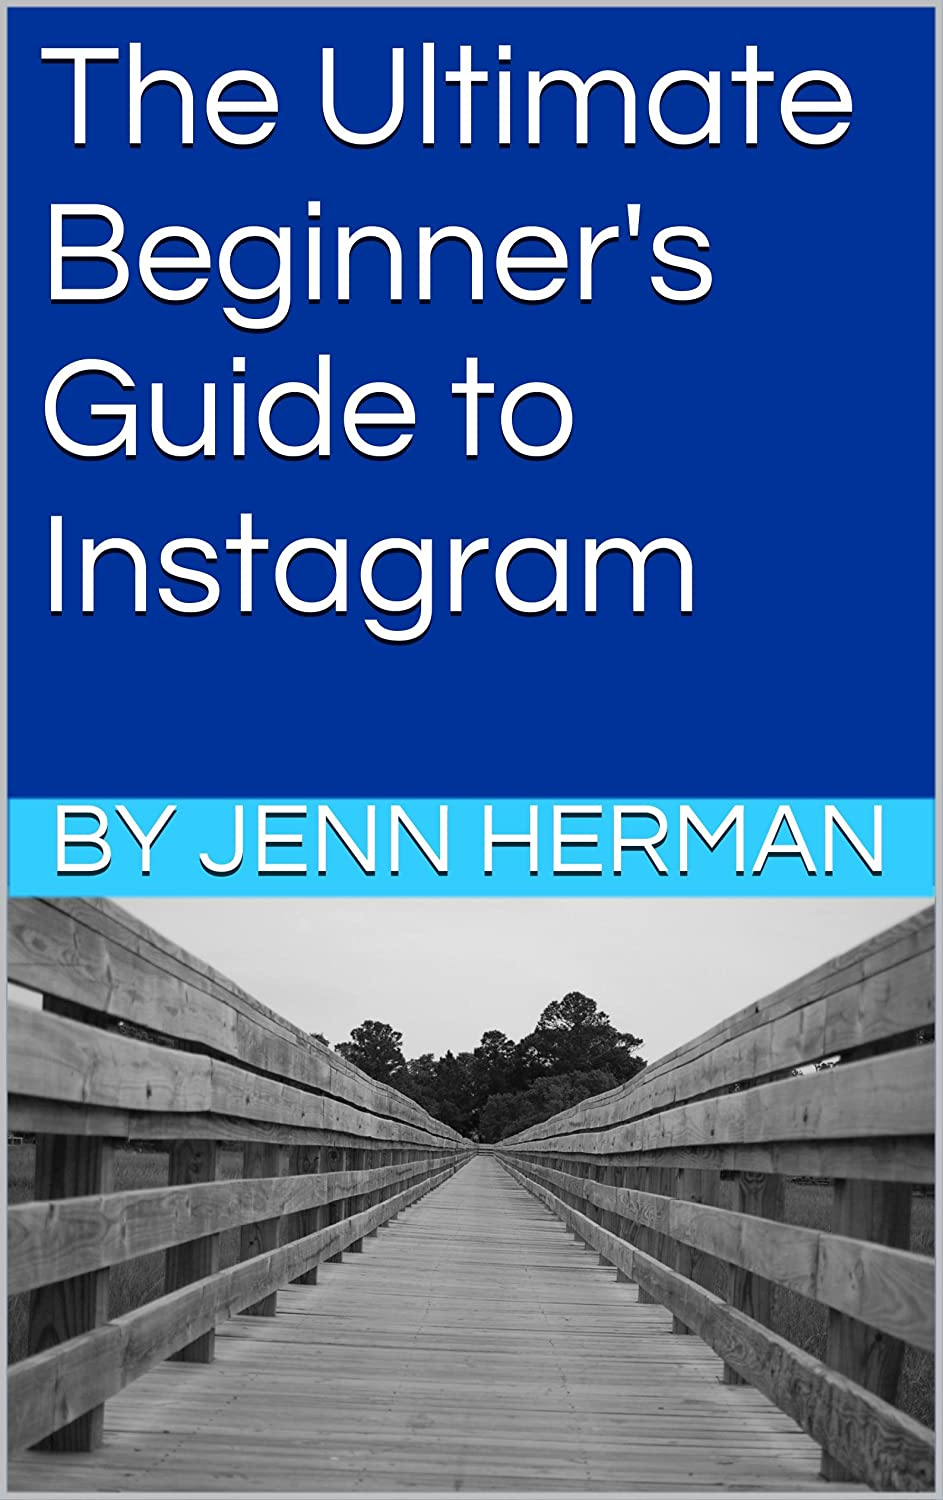 Learn How to Use Instagram!